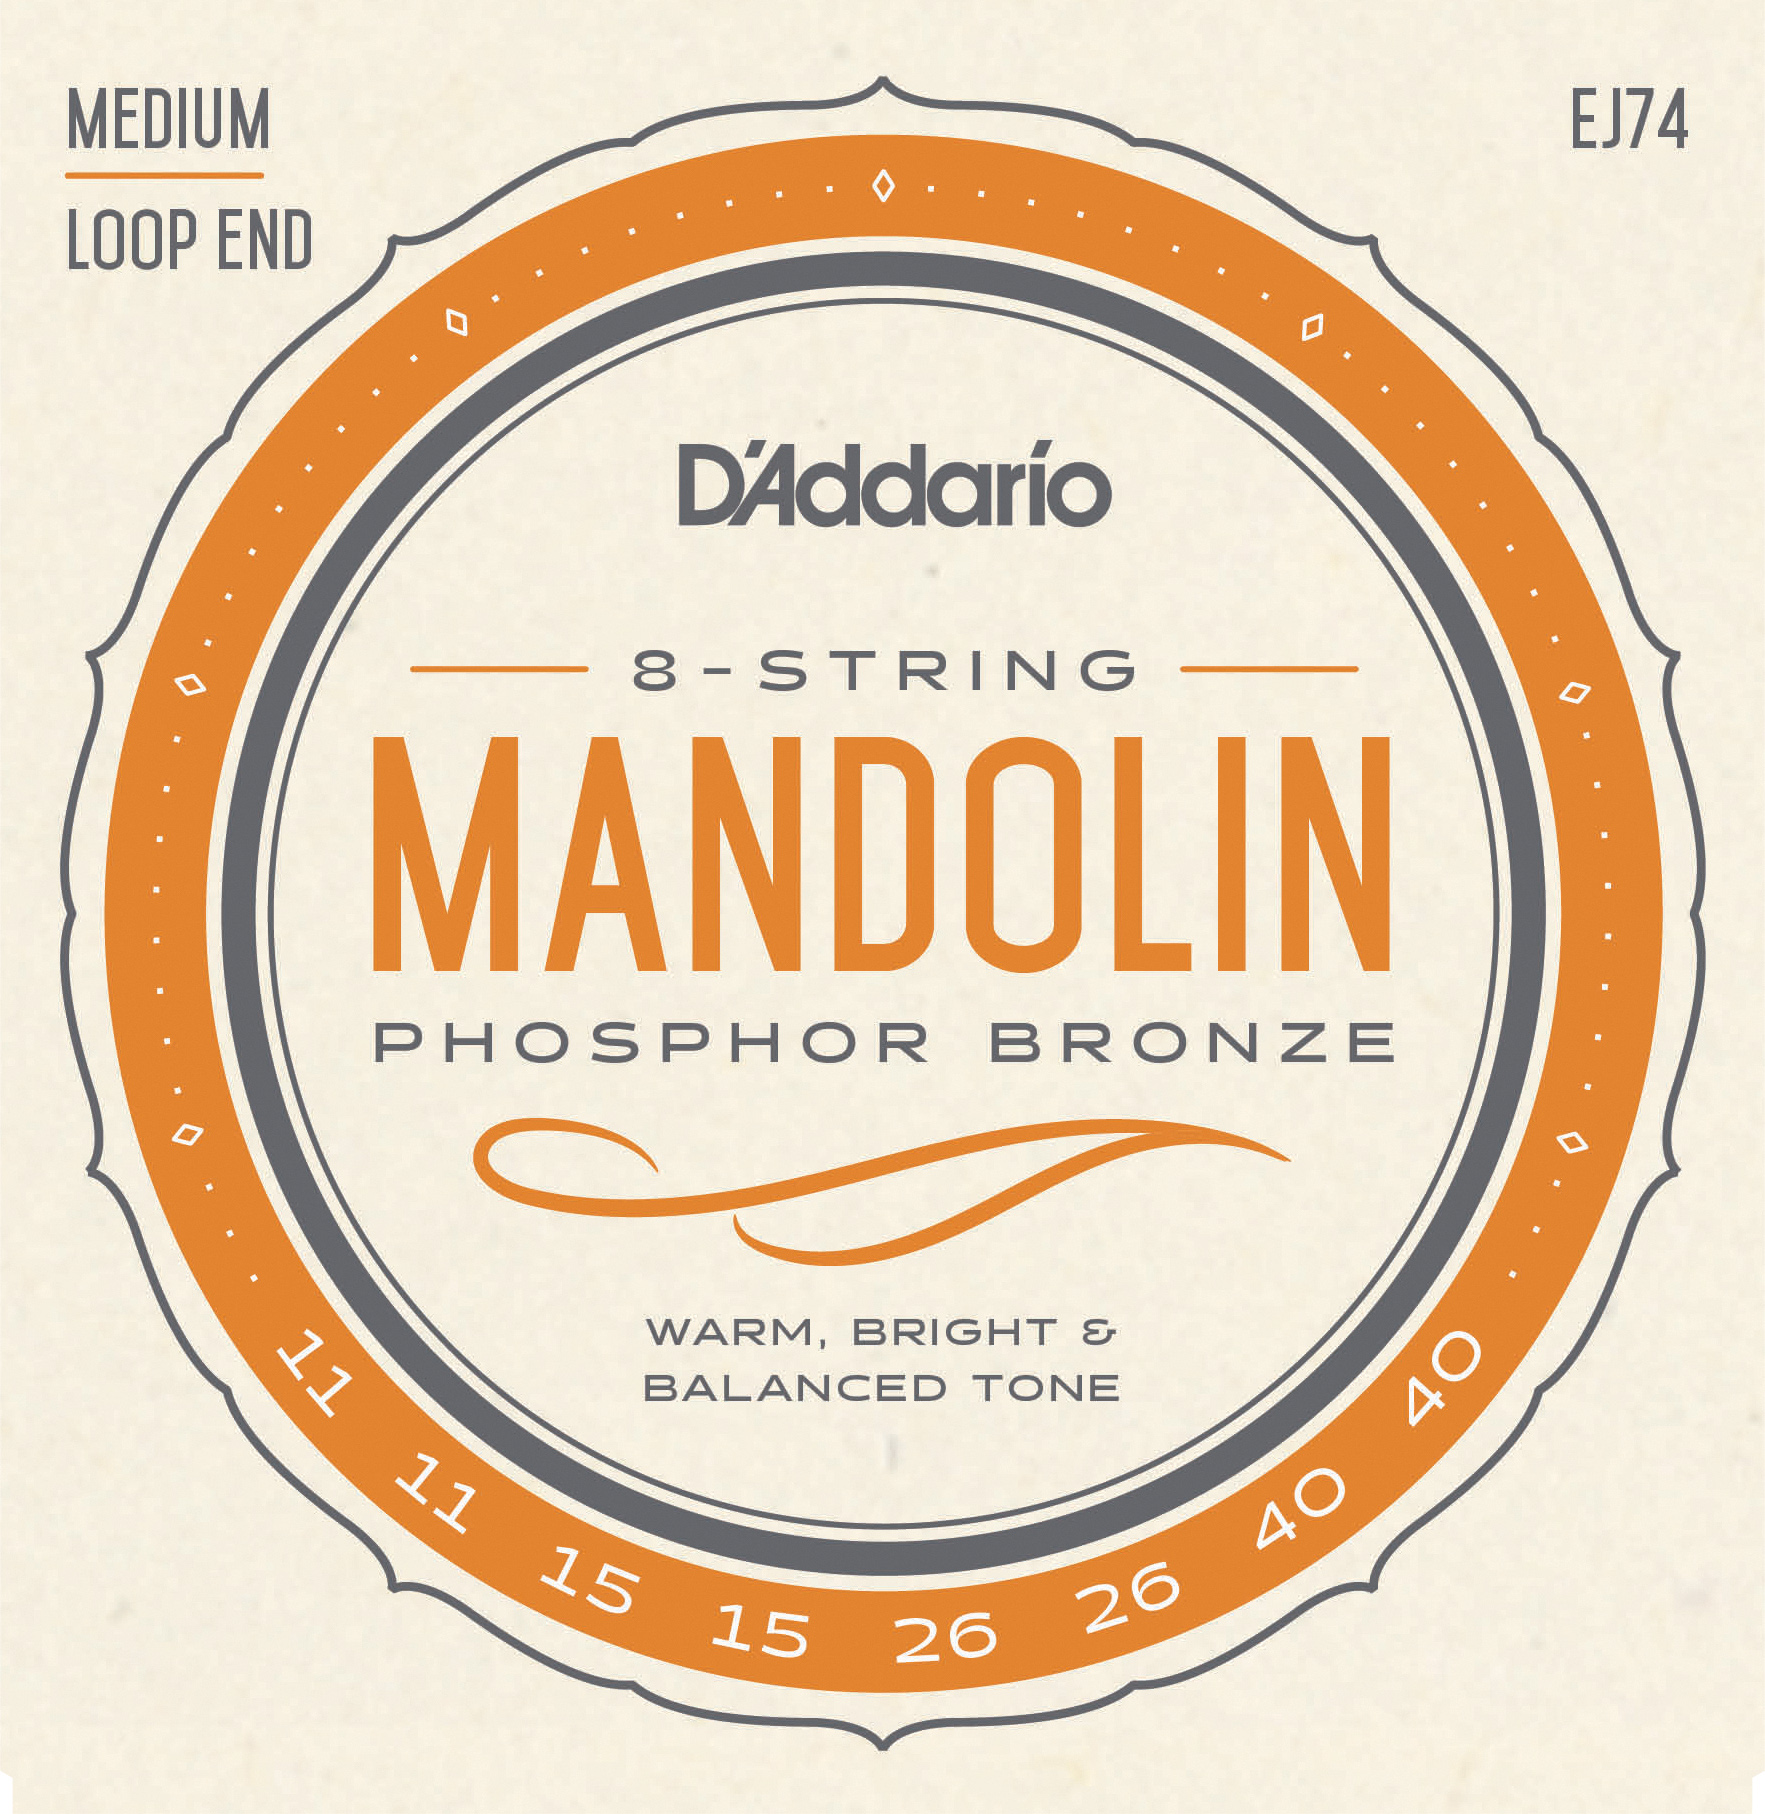 D'Addario Phosphor Bronze EJ74 Mandolin Strings, Medium, 11-40